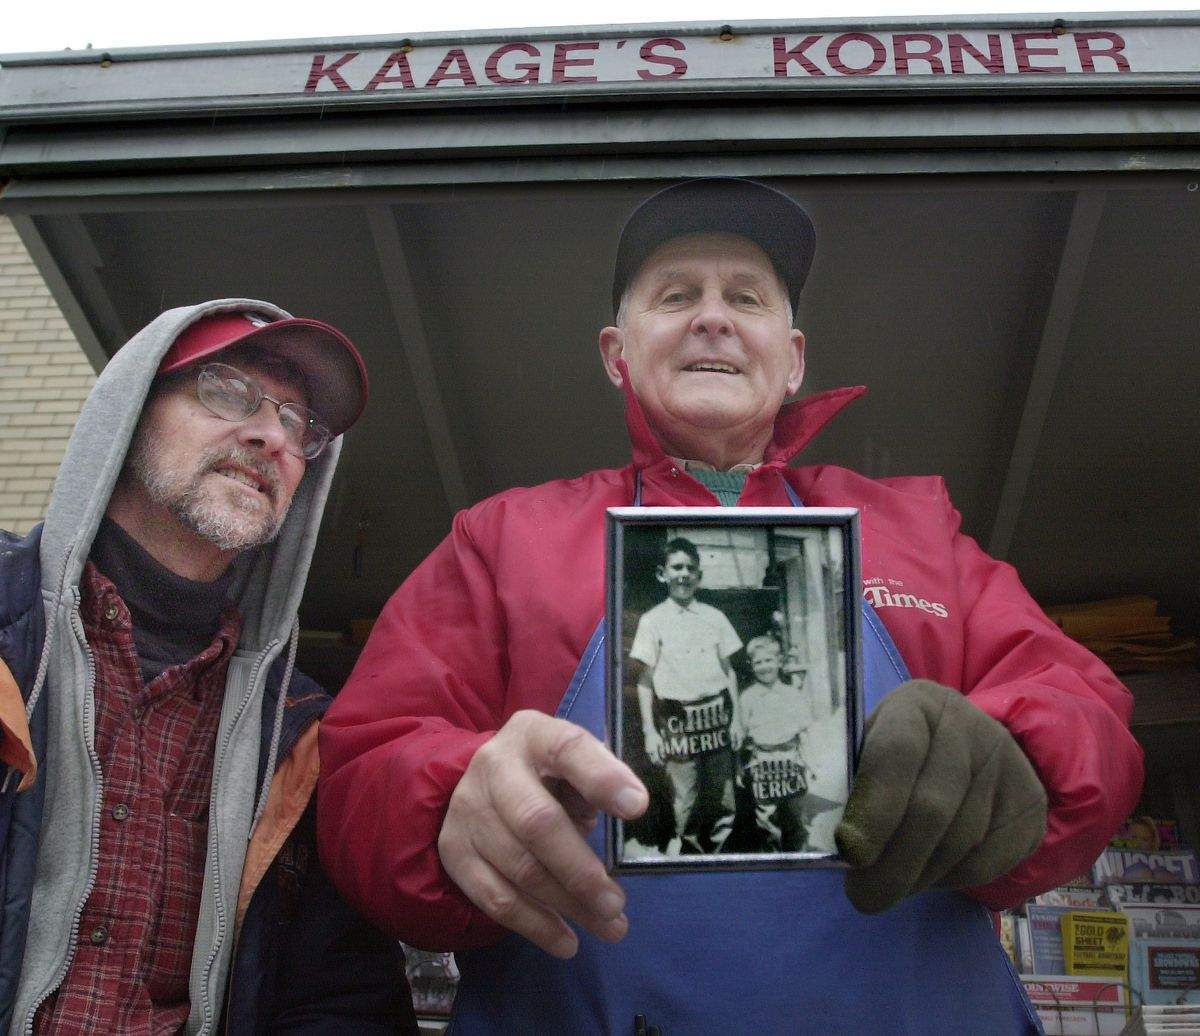 Irv Kaage Jr. (right) with his son Michael Kaage in November 2002 at Kaage's Corner, the Edison Park newsstand where at that point he'd been selling newspapers and magazines for over 60 years. That's Michael at age 5 and his older brother Irv Kaaage III in the photo the father's holding.